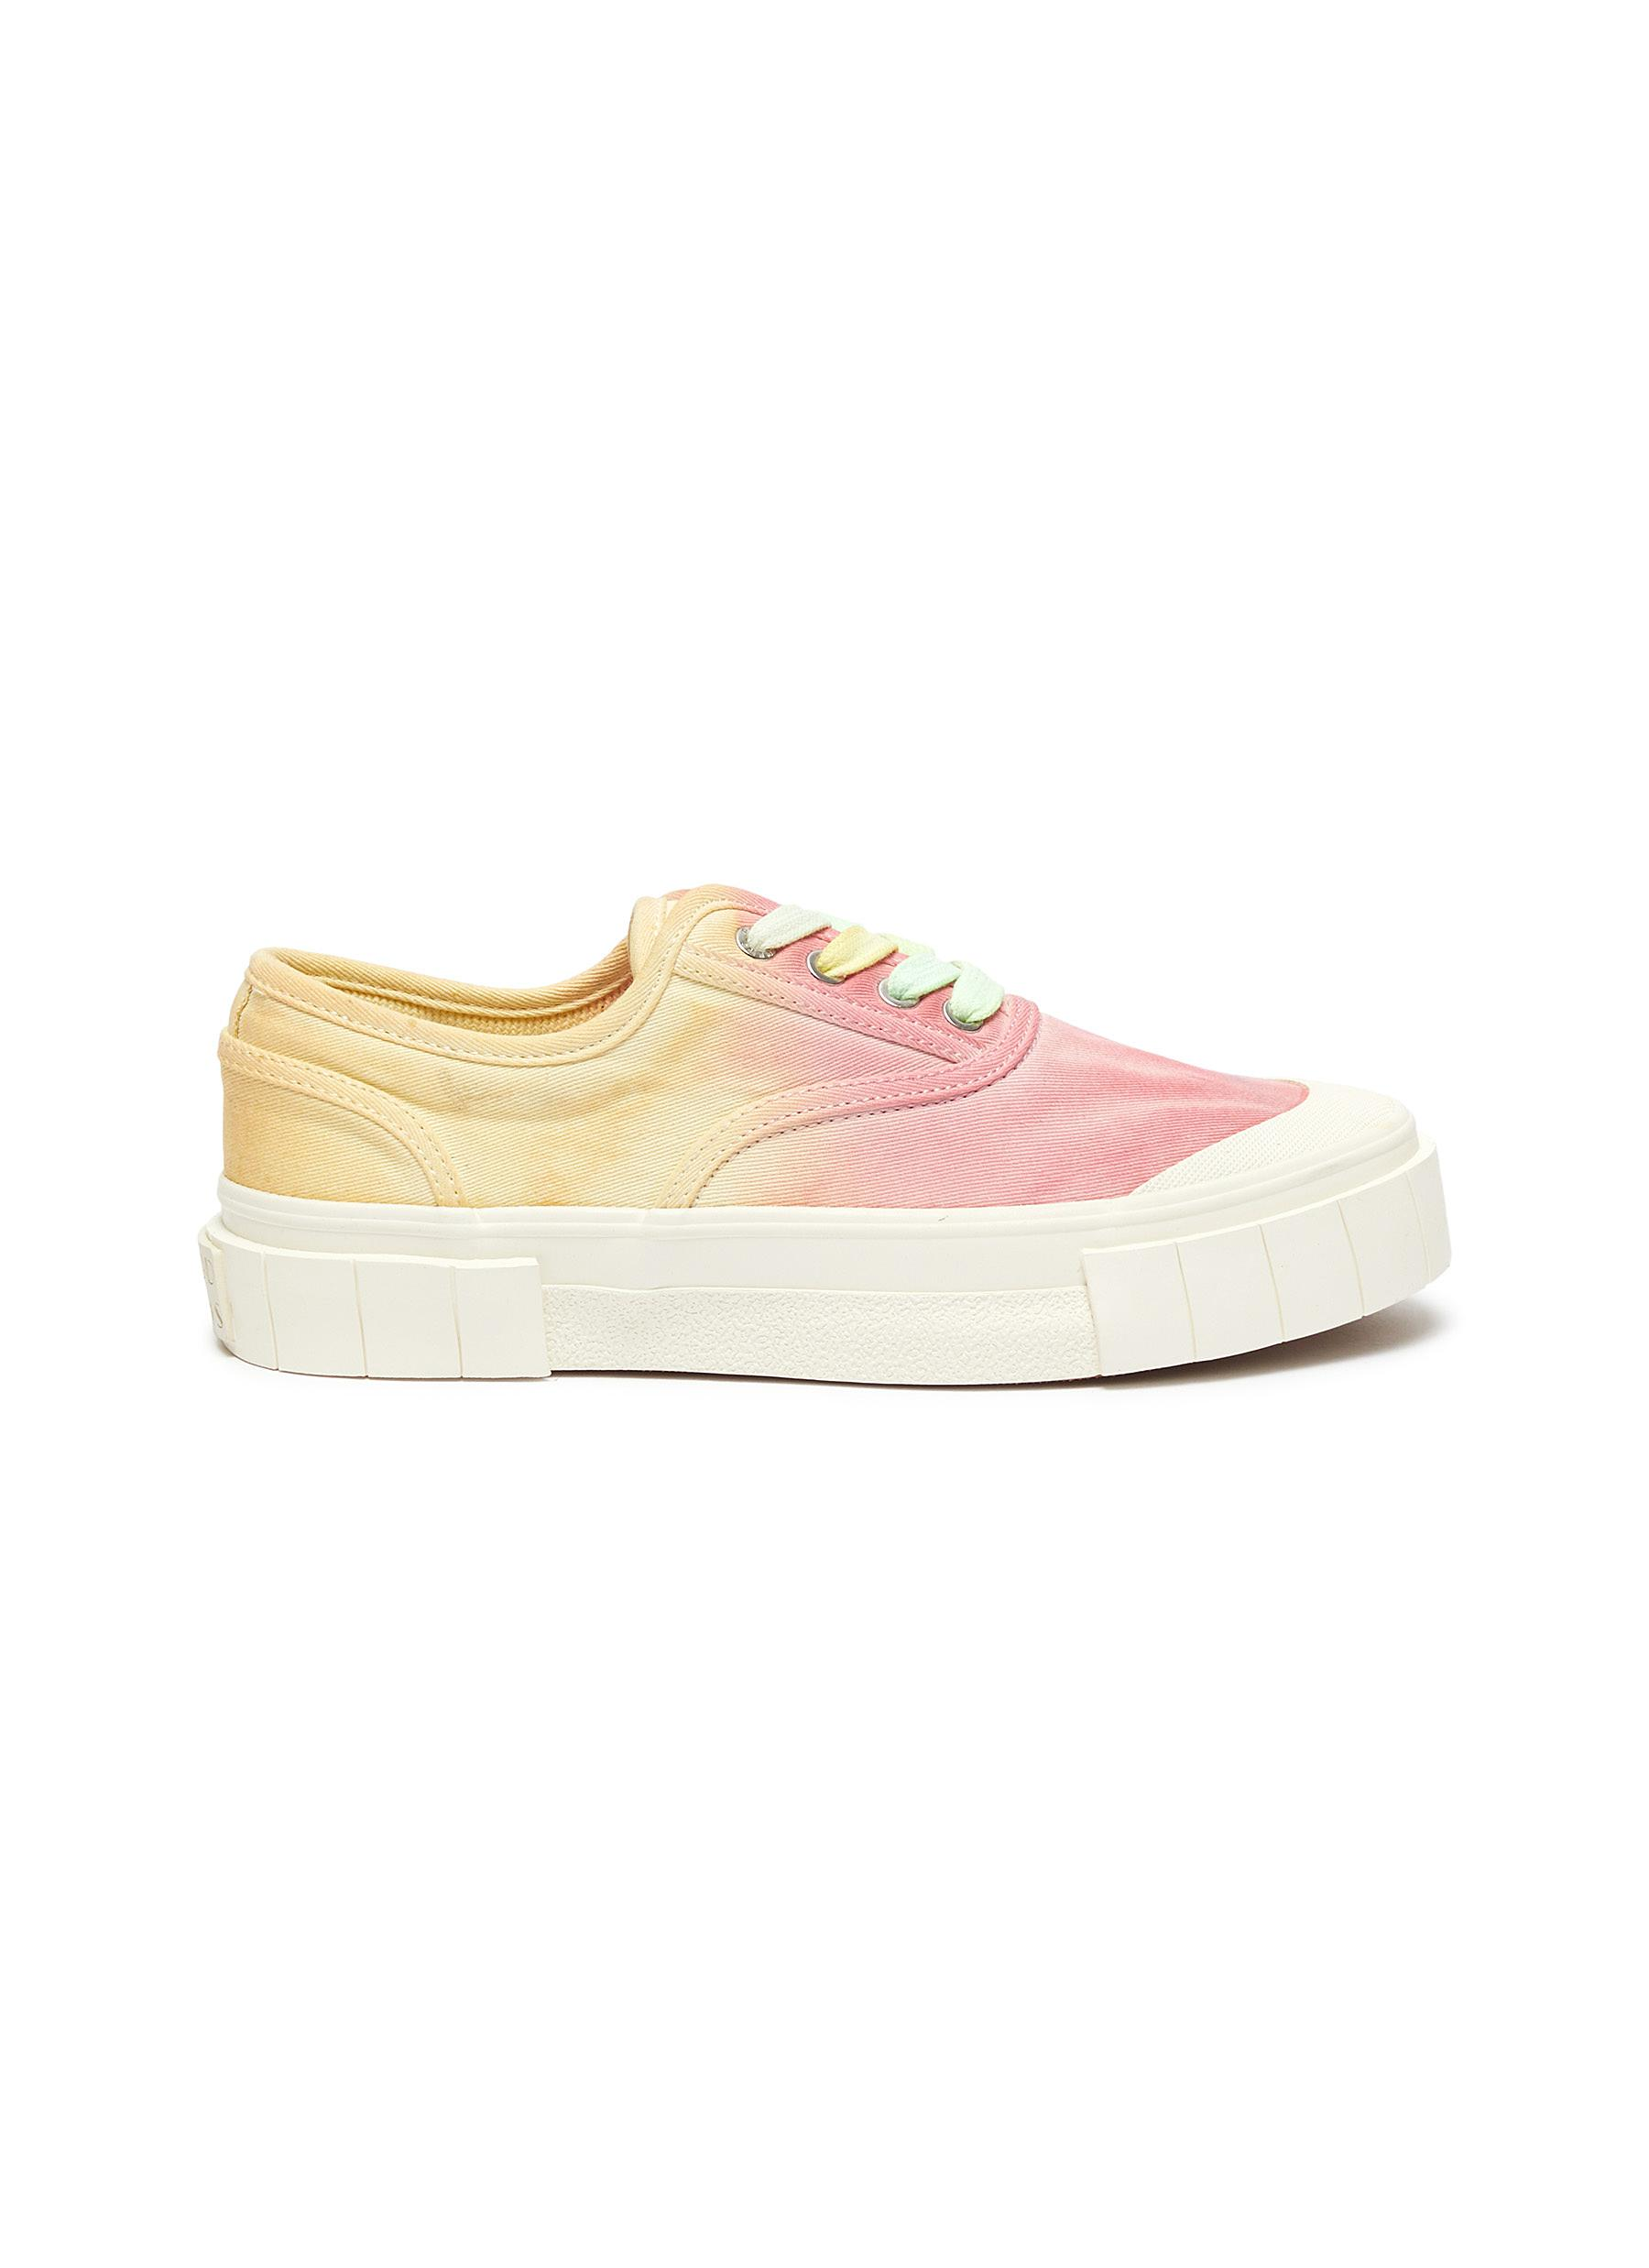 shop Good News 'Ace' tie dye canvas sneakers online